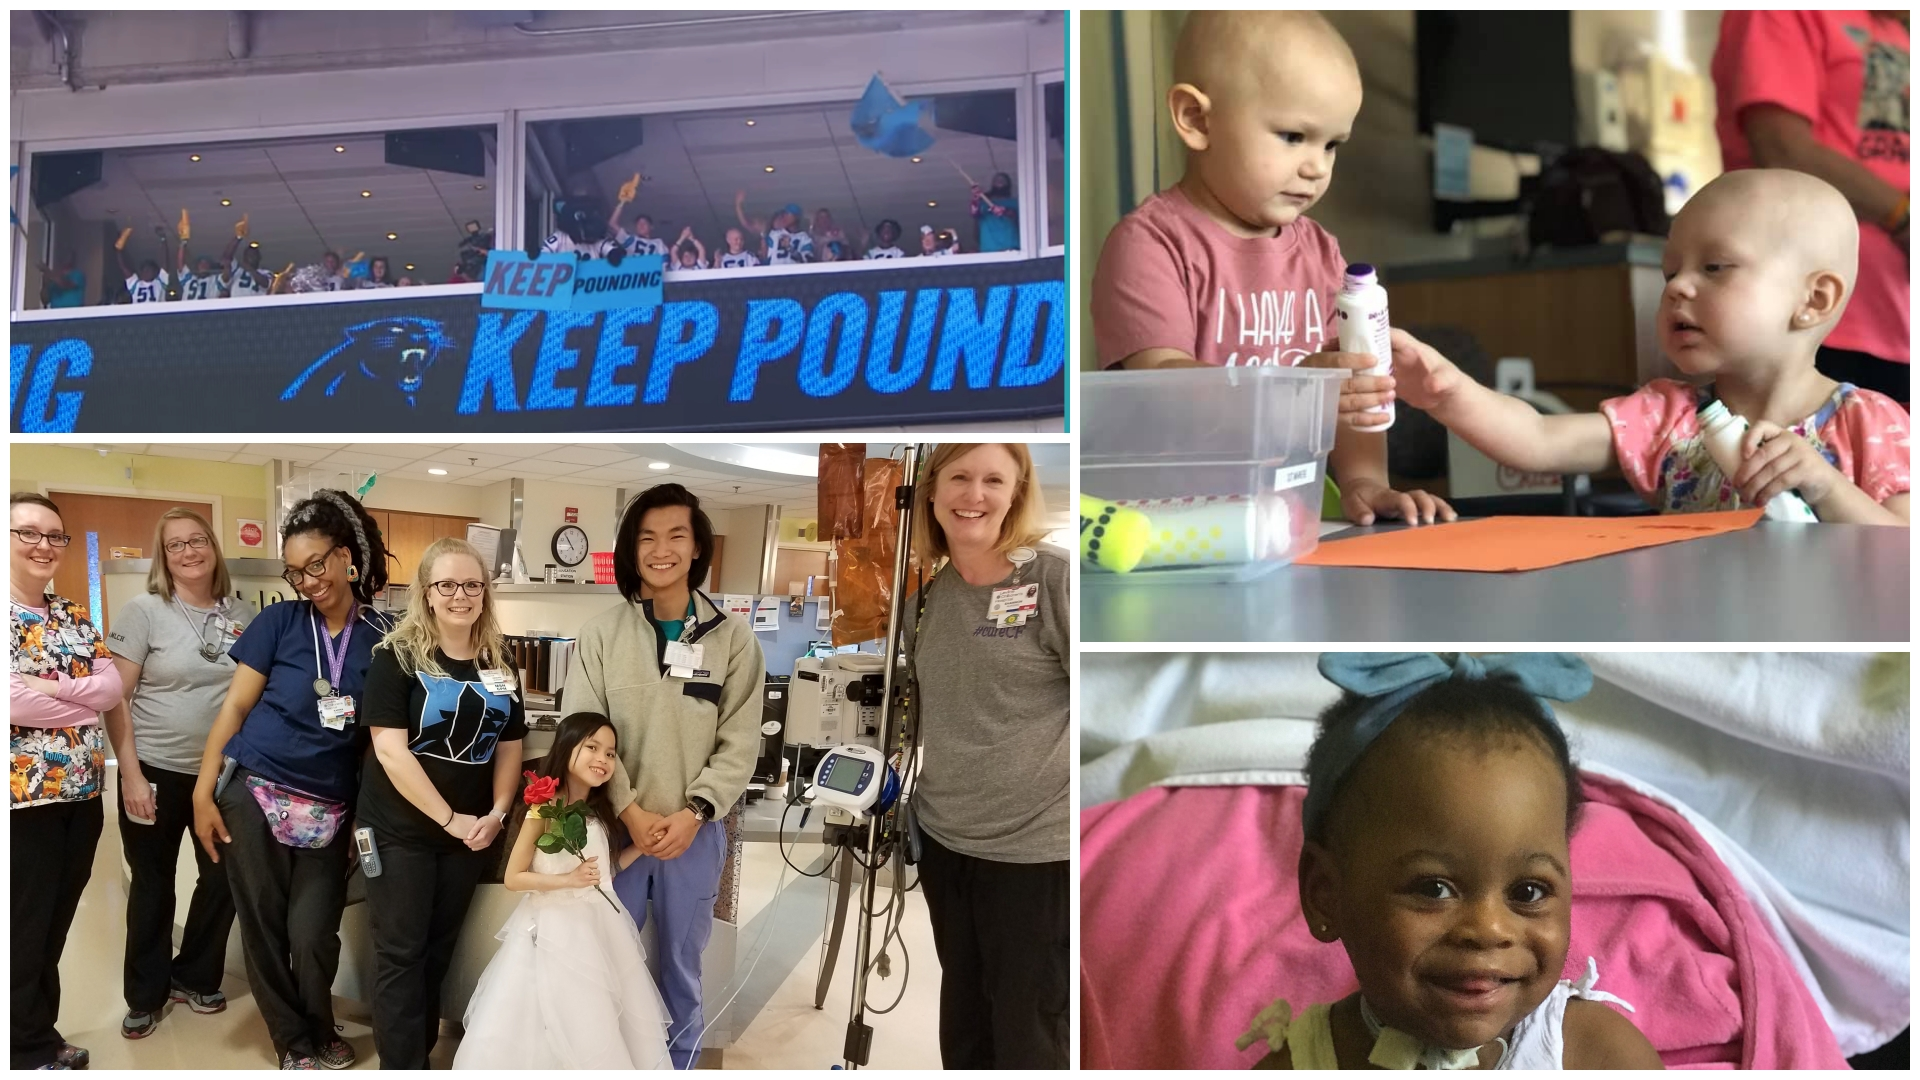 As we look back on 2019, read our favorite stories about some of our Levine Children's Hospital patients.